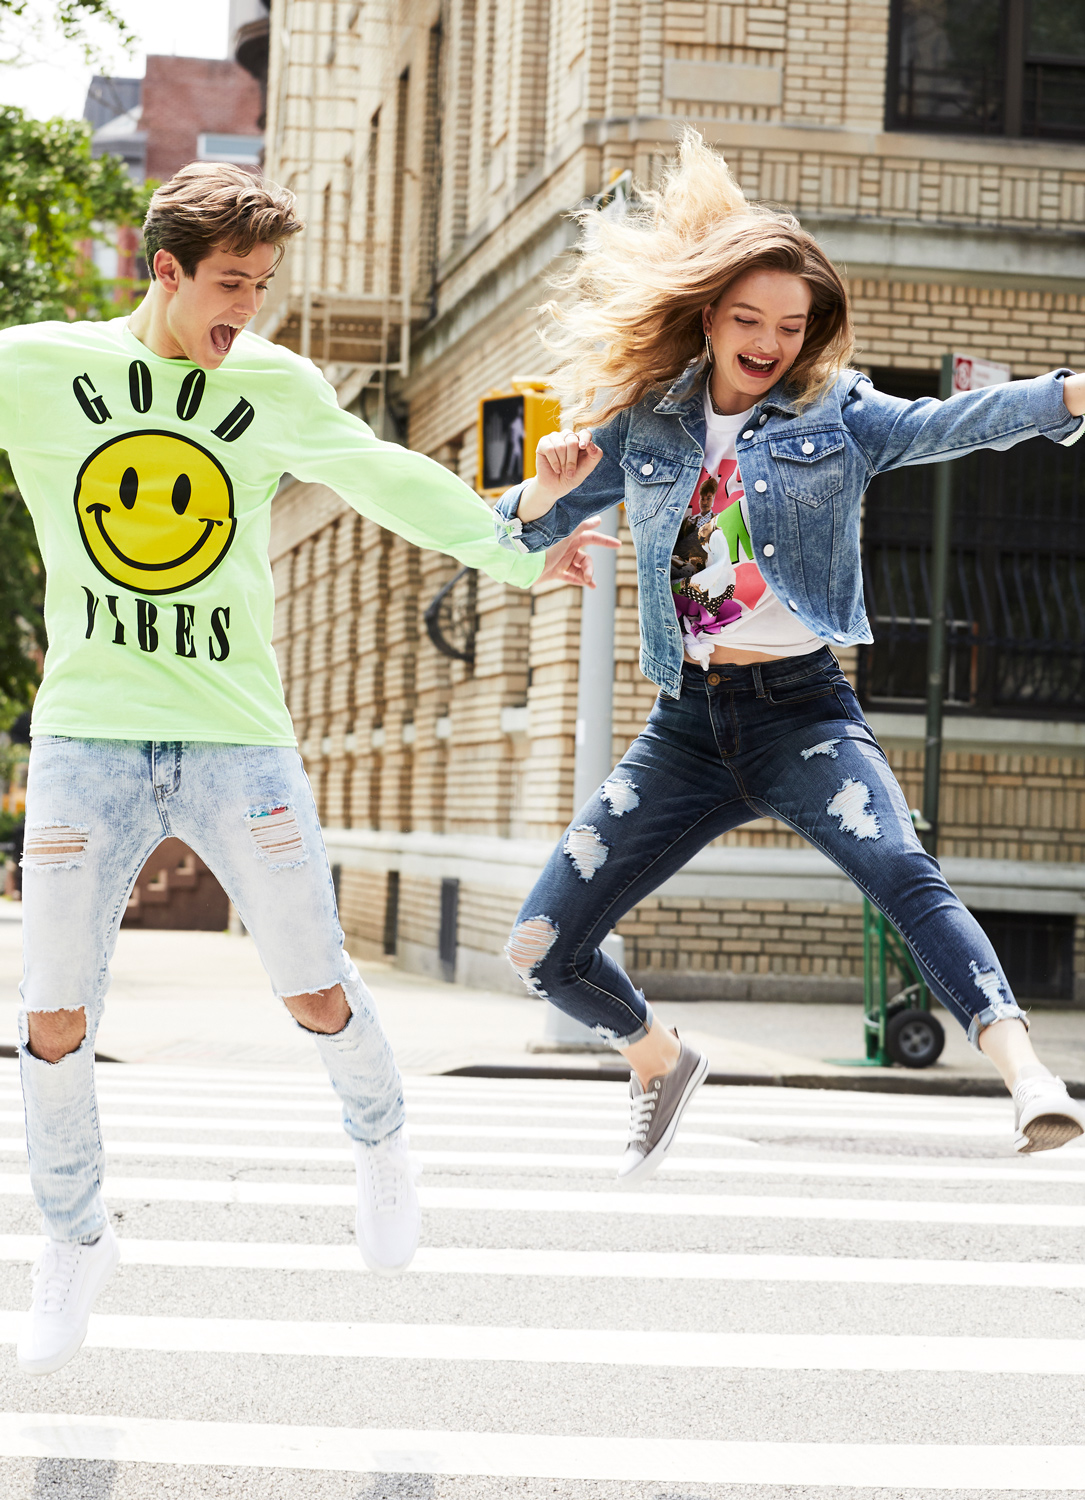 rue 21 Fall Campaign 2019 by Two Eye Monkey